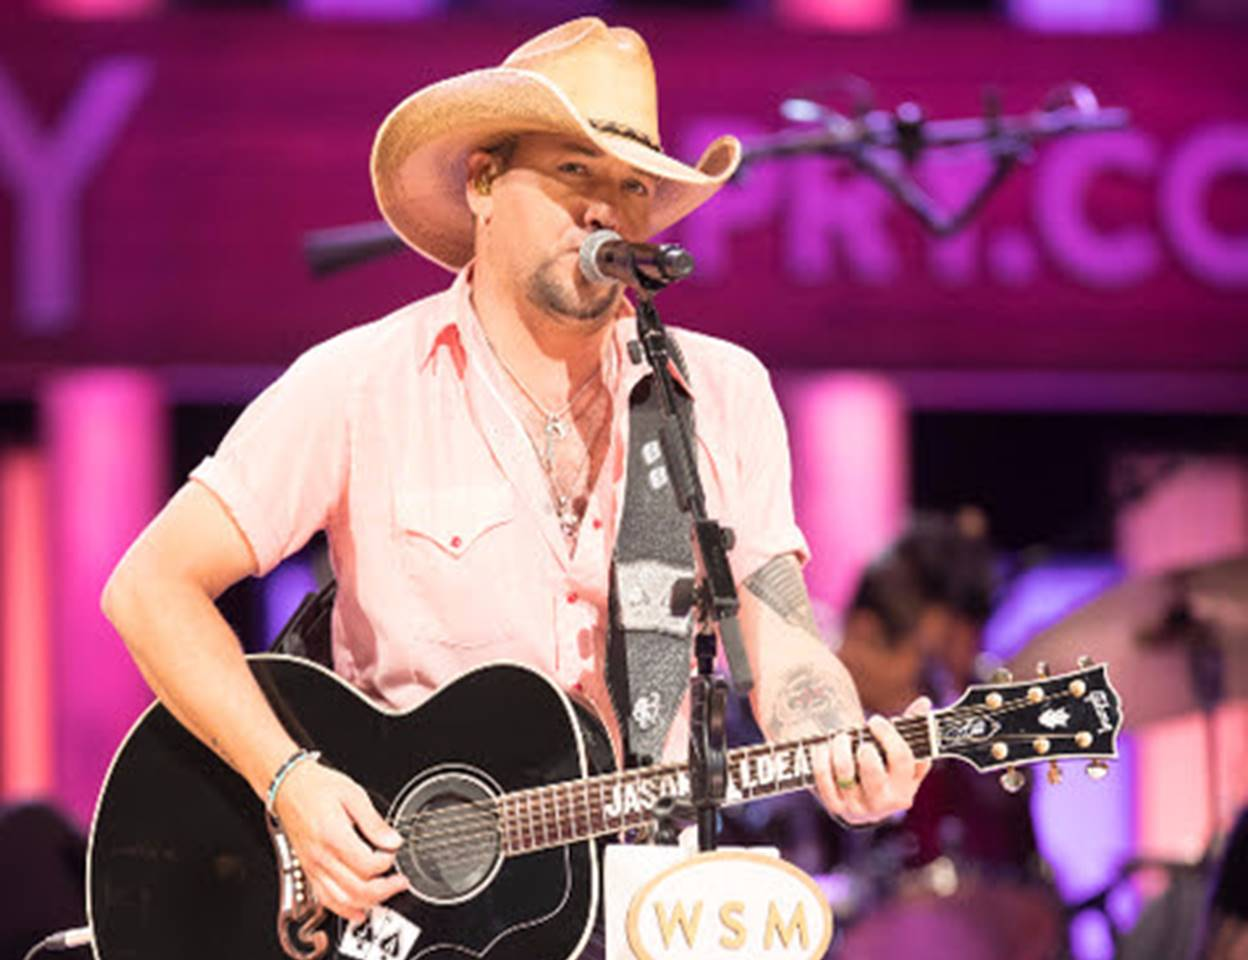 jason aldean grand ole opry breast cancer